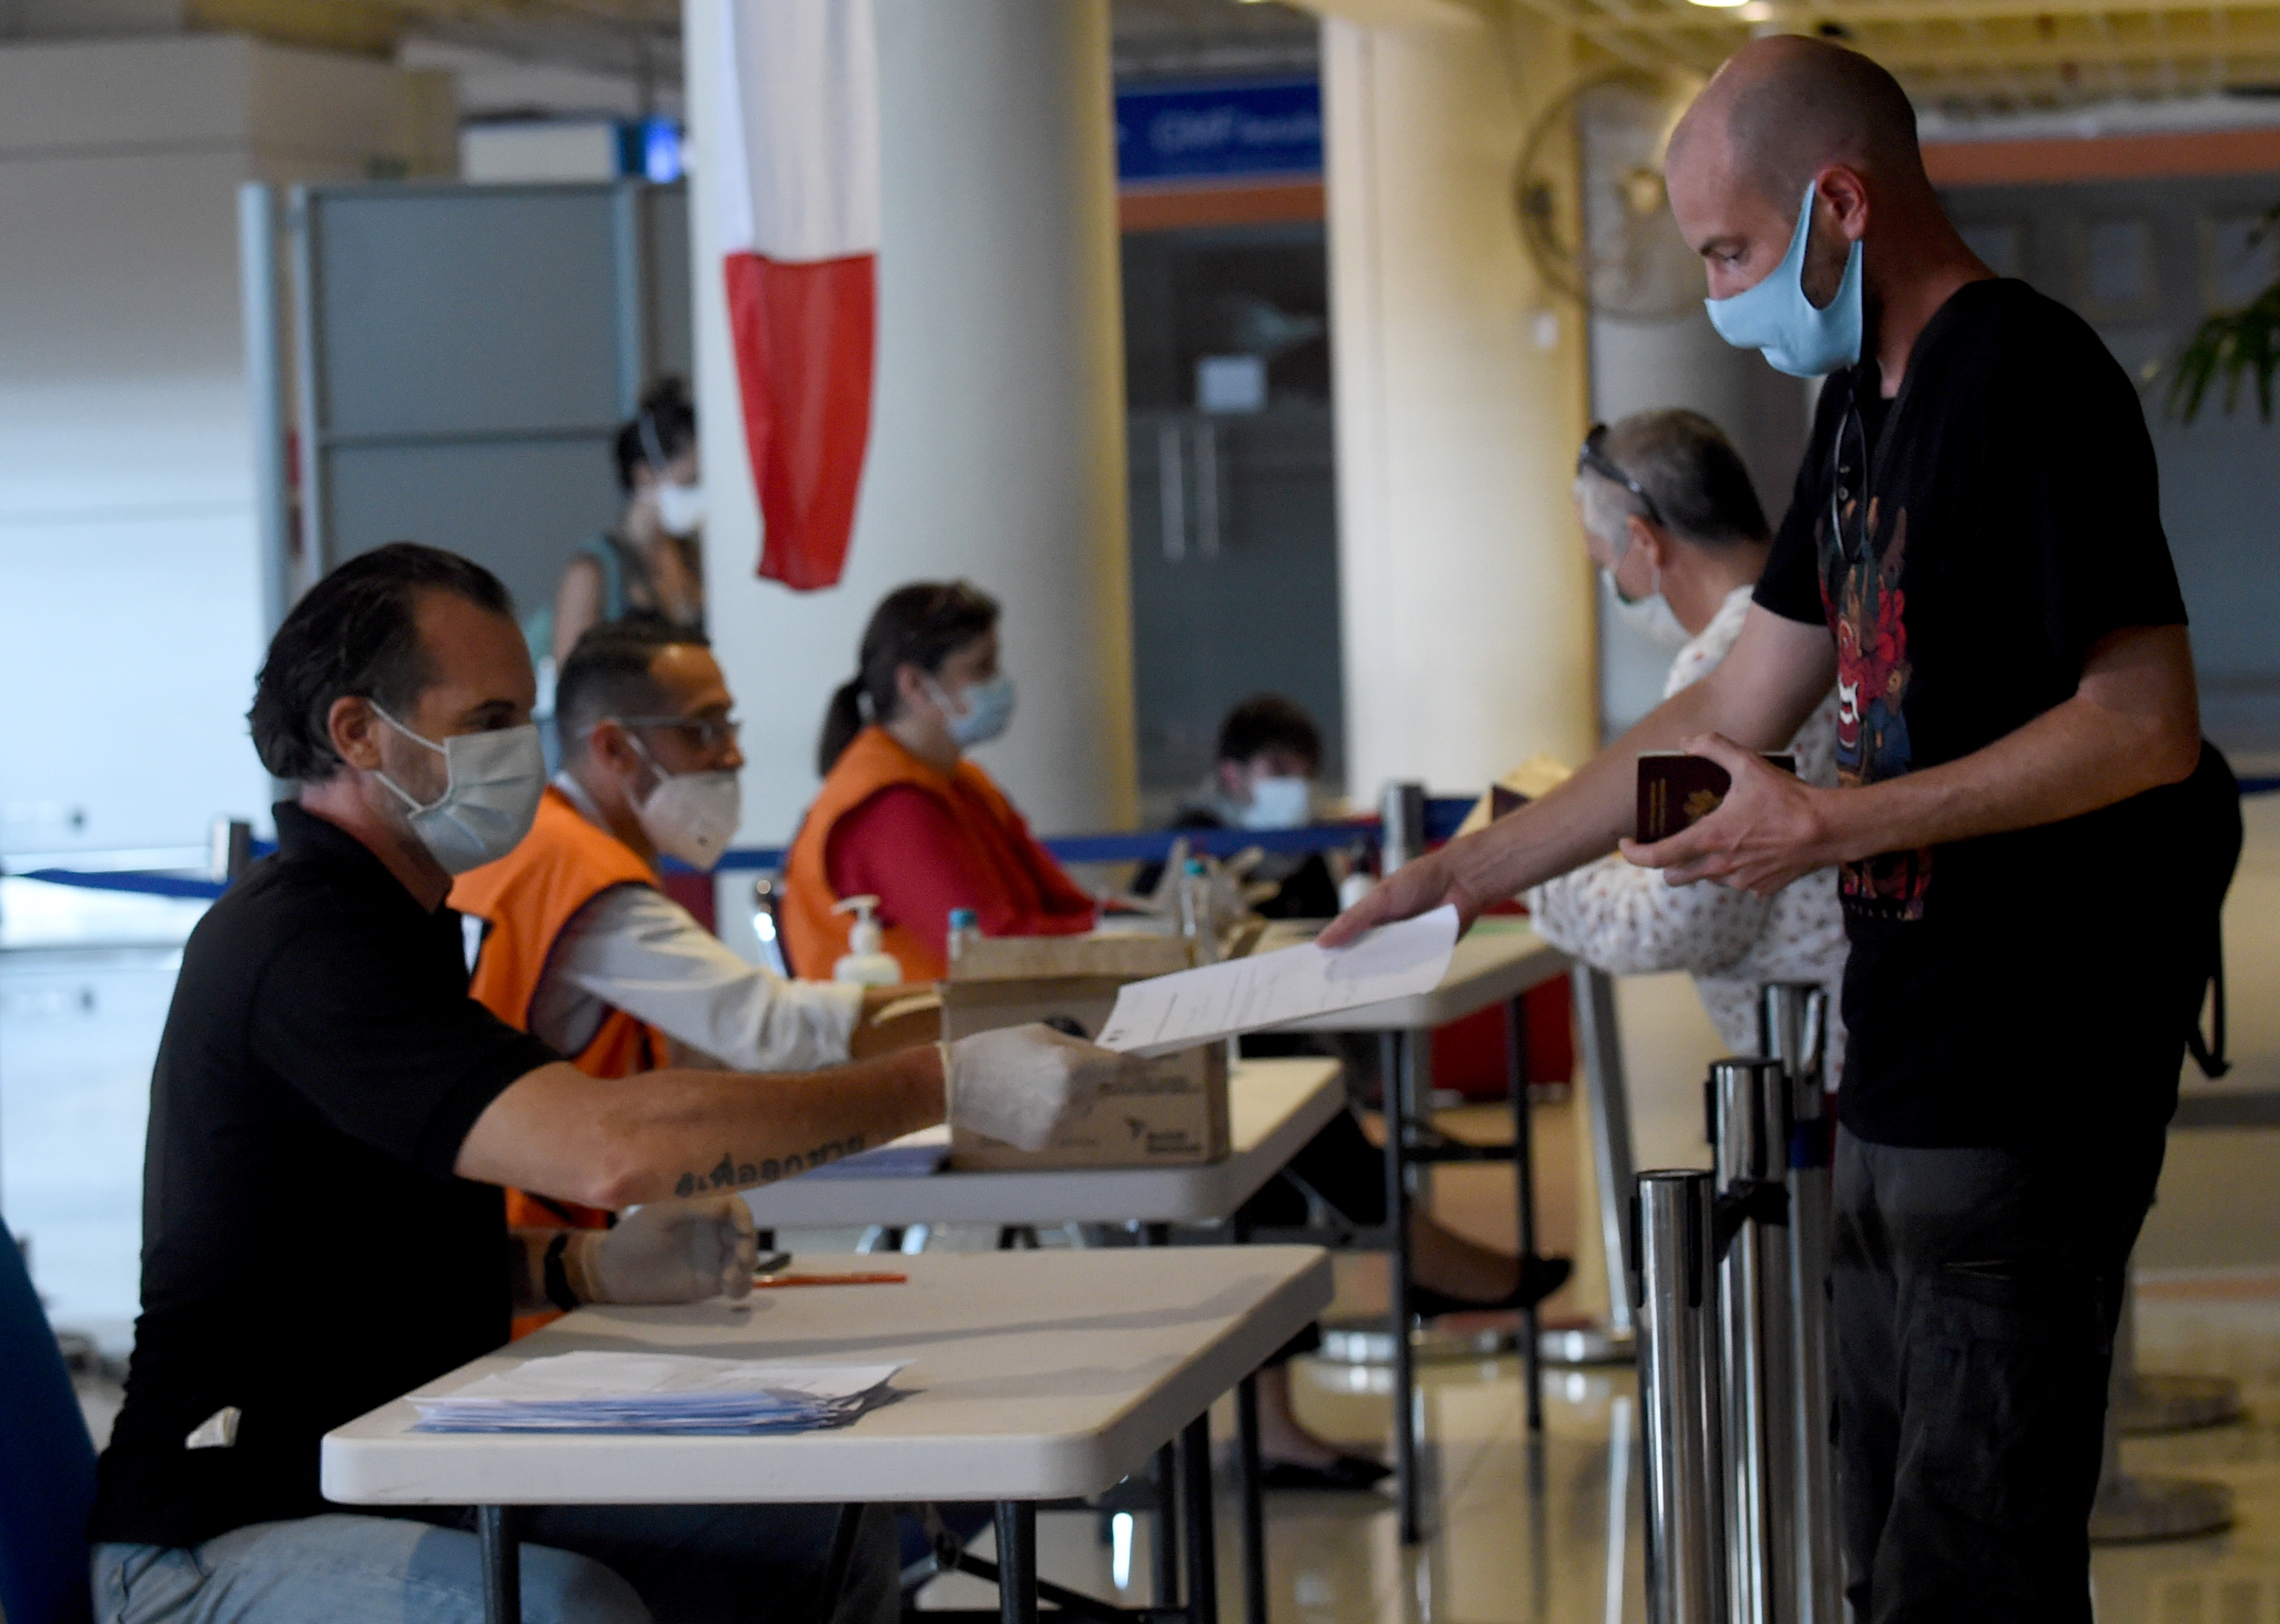 Asia-Pacific countries on high alert for COVID-19 as more confirmed cases, deaths reported